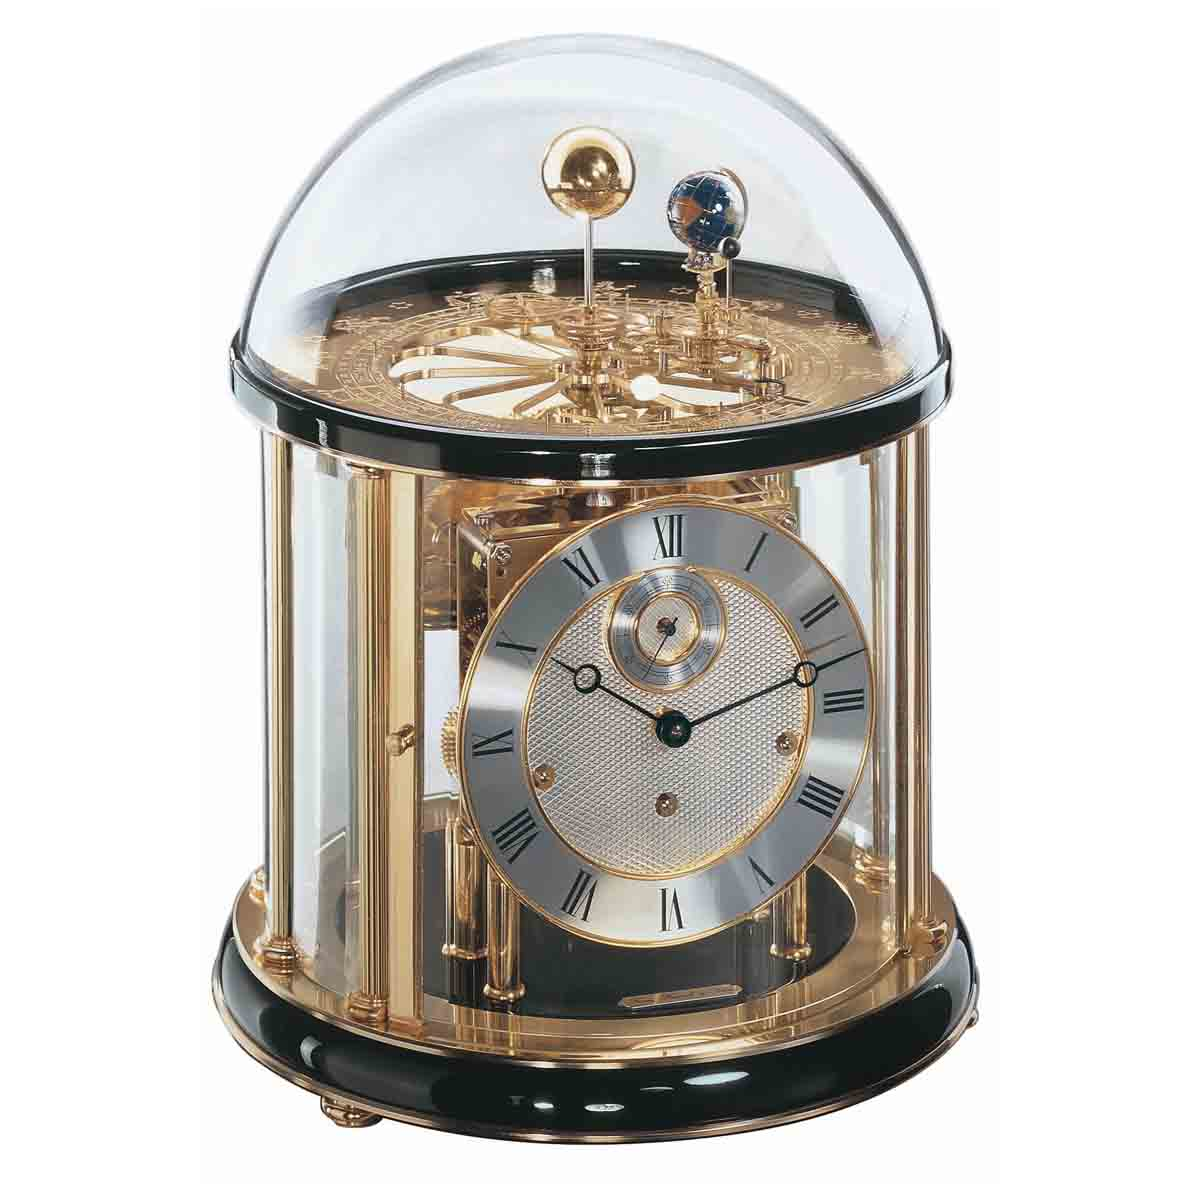 TELLURIUM I 22823-740352-Black Astrolubium Table Clock